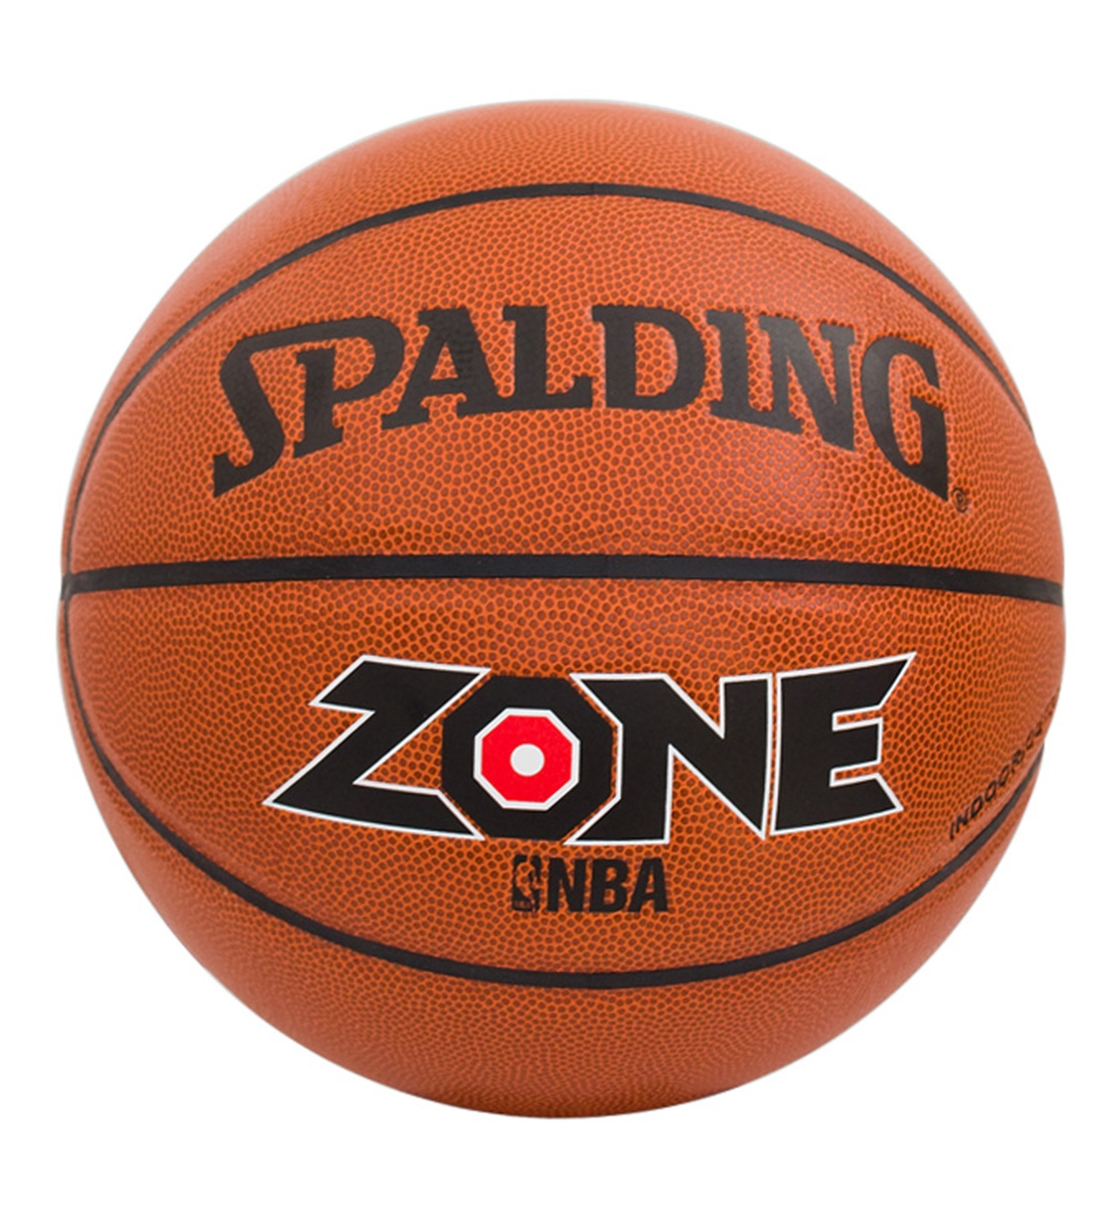 Spalding Μπάλα Basket Zone All Surface Series Size 7 Composite 74508Z1